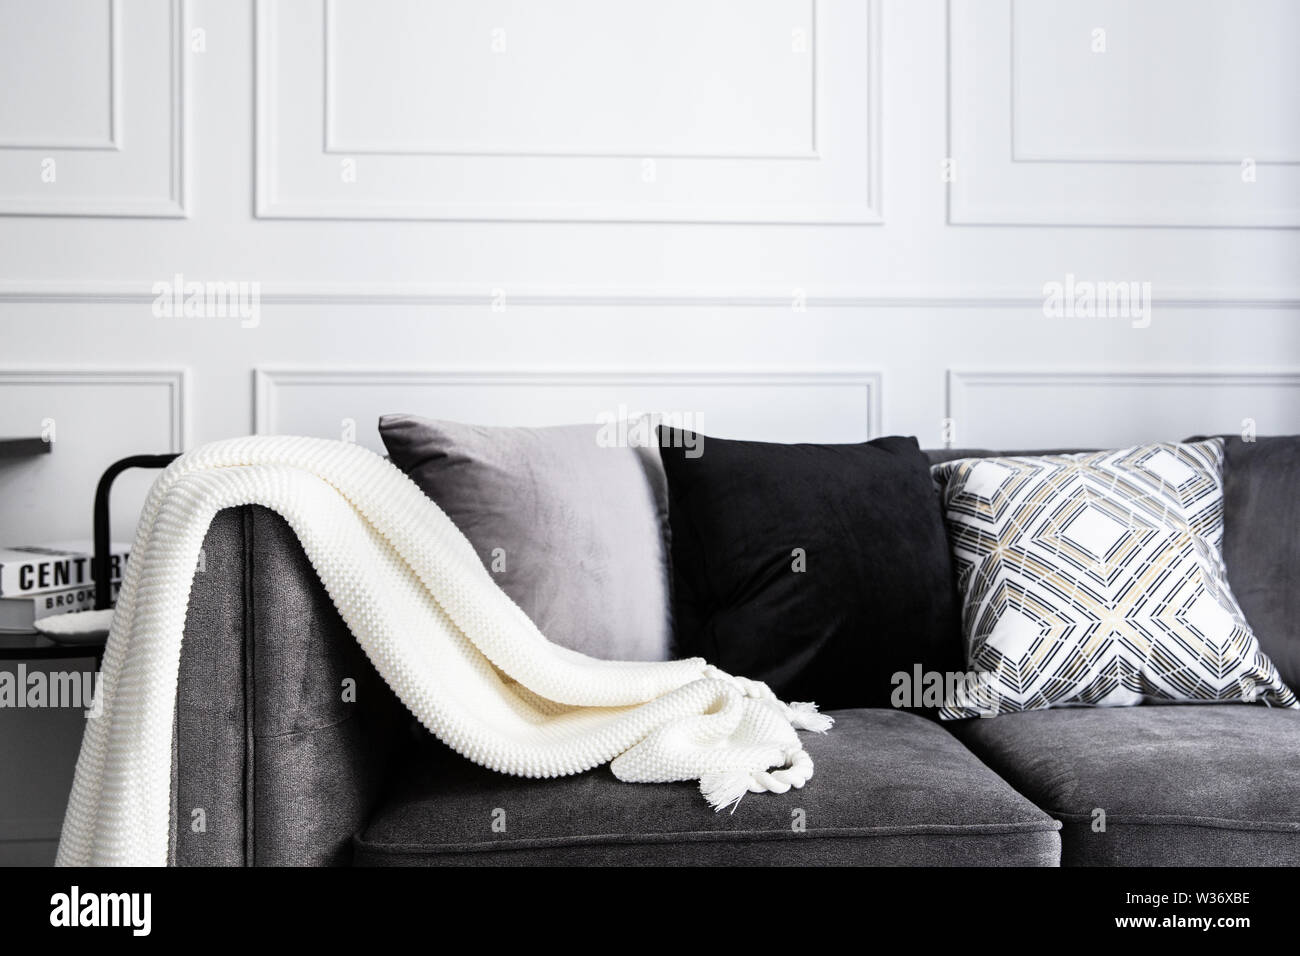 https www alamy com living room interior with with gray fablic sofa comfy pillows plaid and knitting whithe blanket decoration modern room interior design image260151906 html